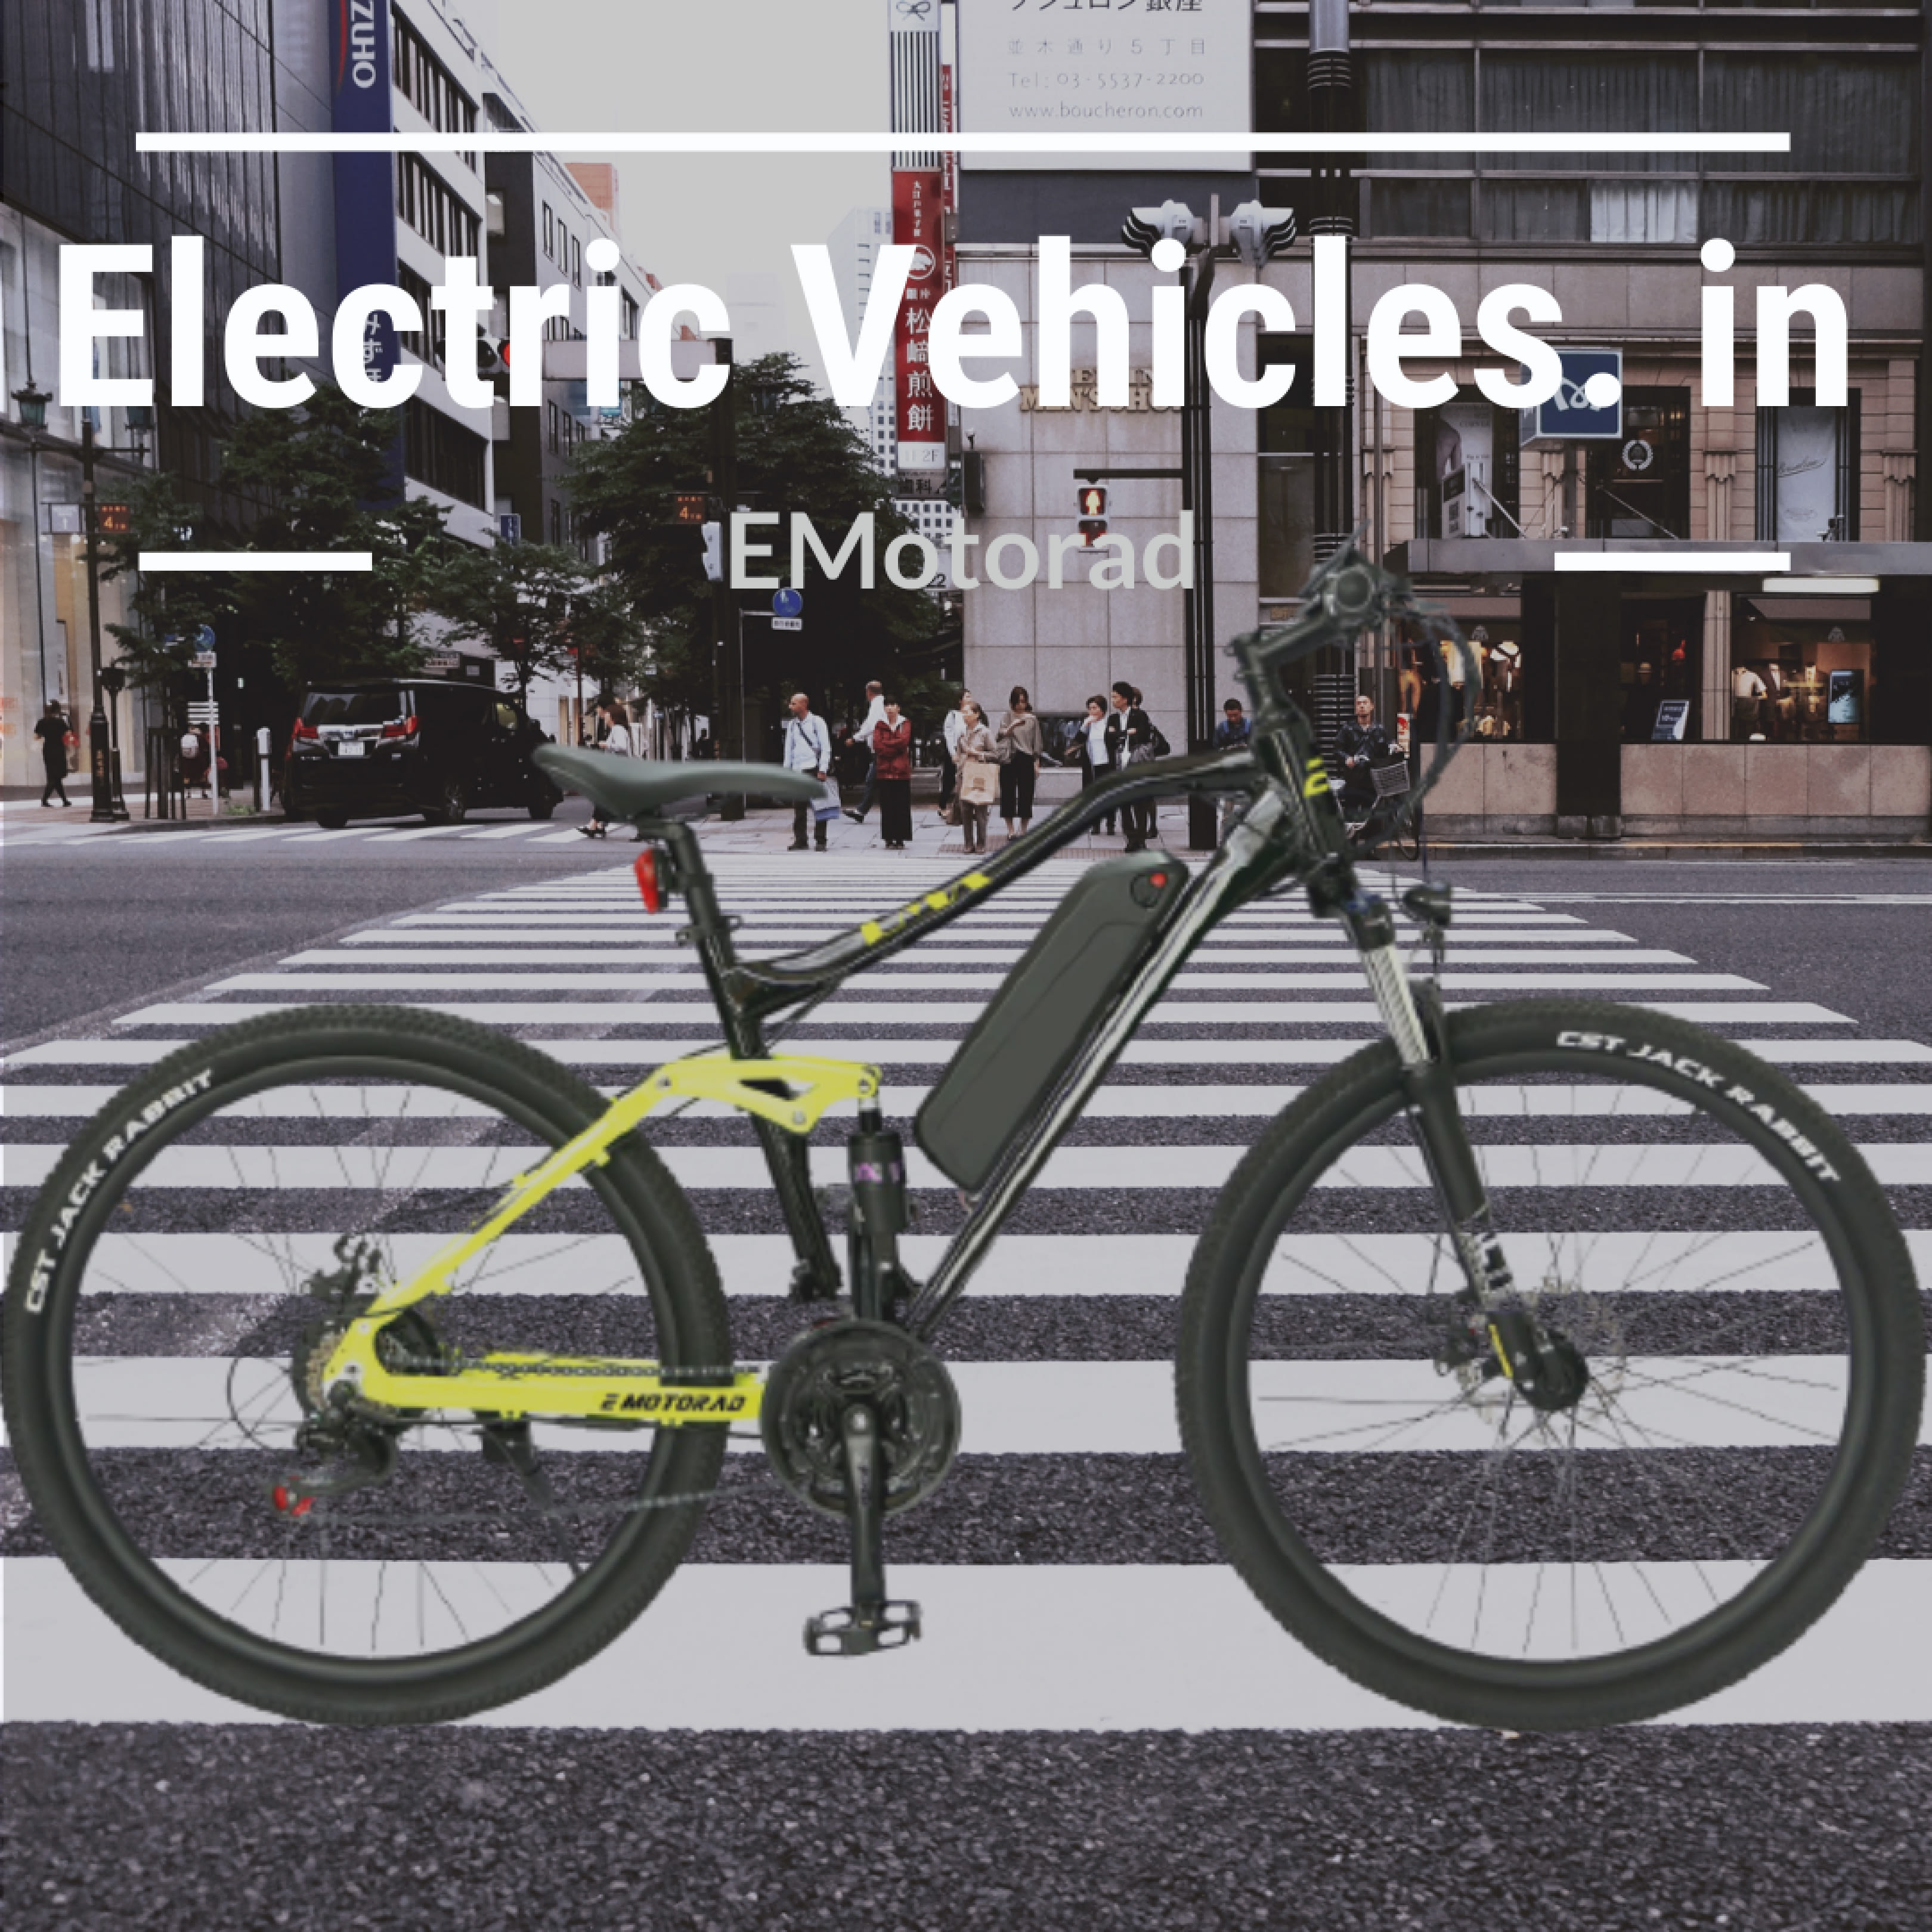 Electric Vehicles.in